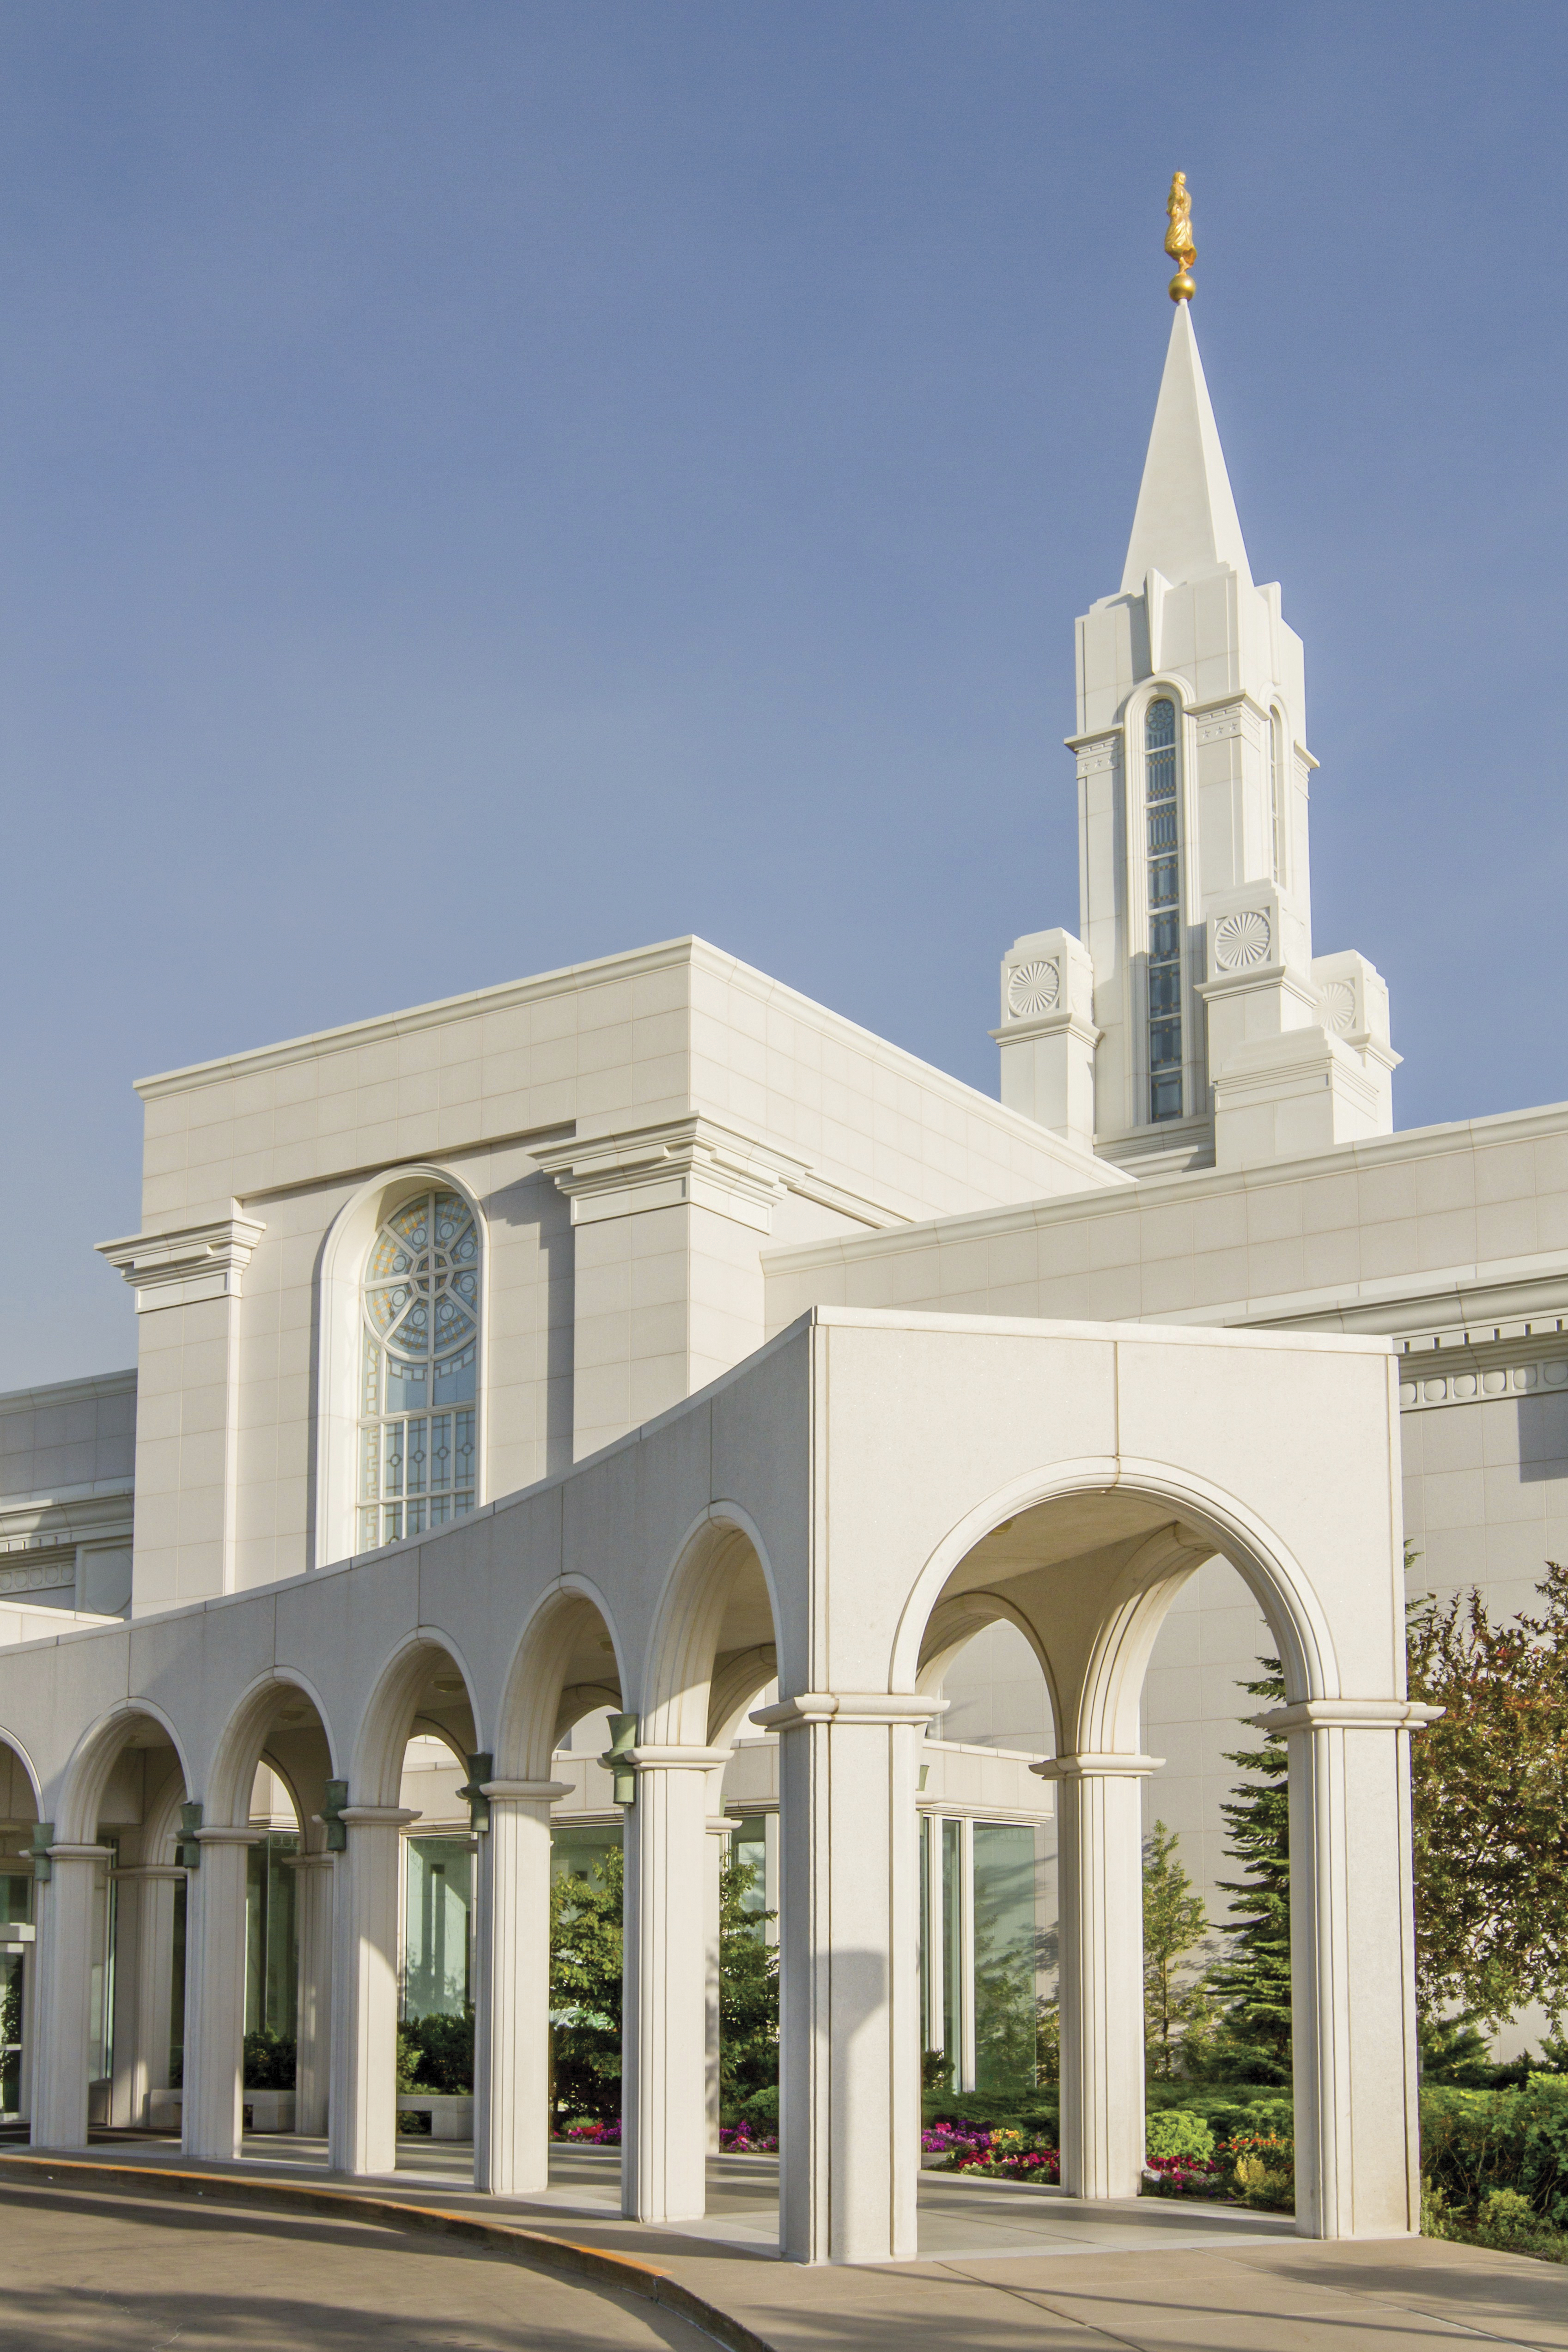 A portrait view of the entrance of the Bountiful Utah Temple.